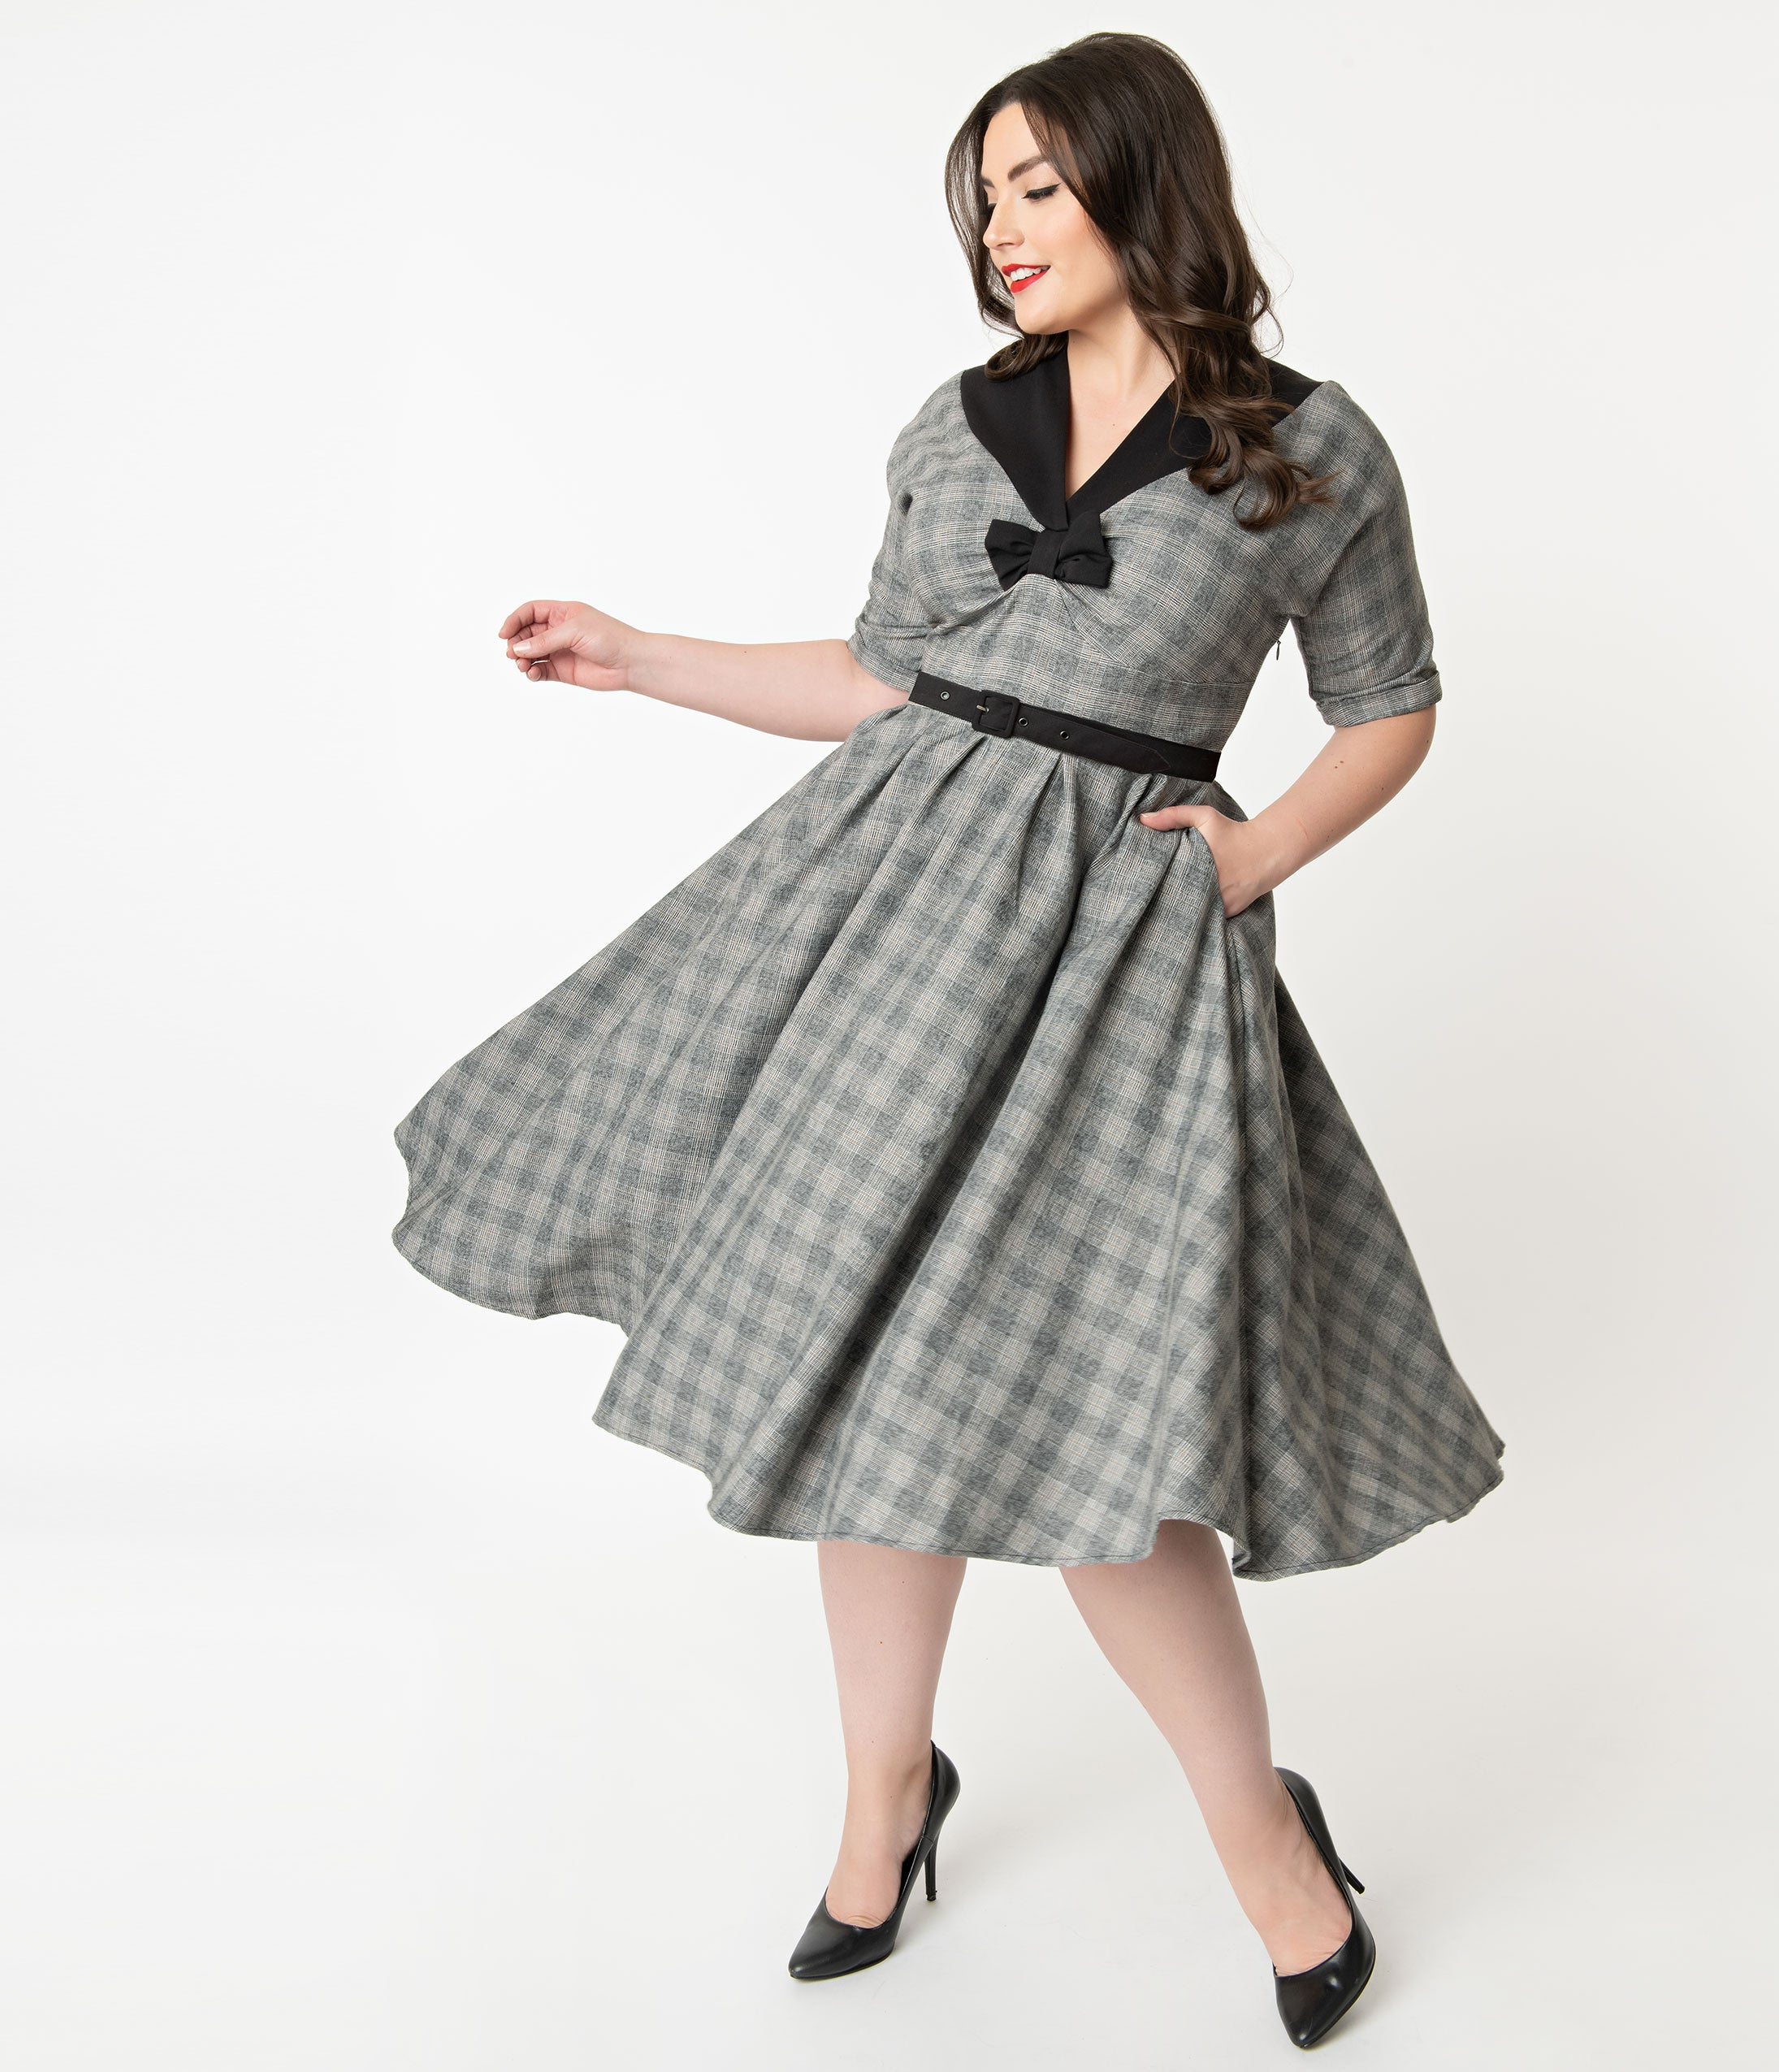 1950s Plus Size Dresses, Swing Dresses Miss Candyfloss Plus Size 1950S Grey Check Maeby Swing Dress $126.00 AT vintagedancer.com